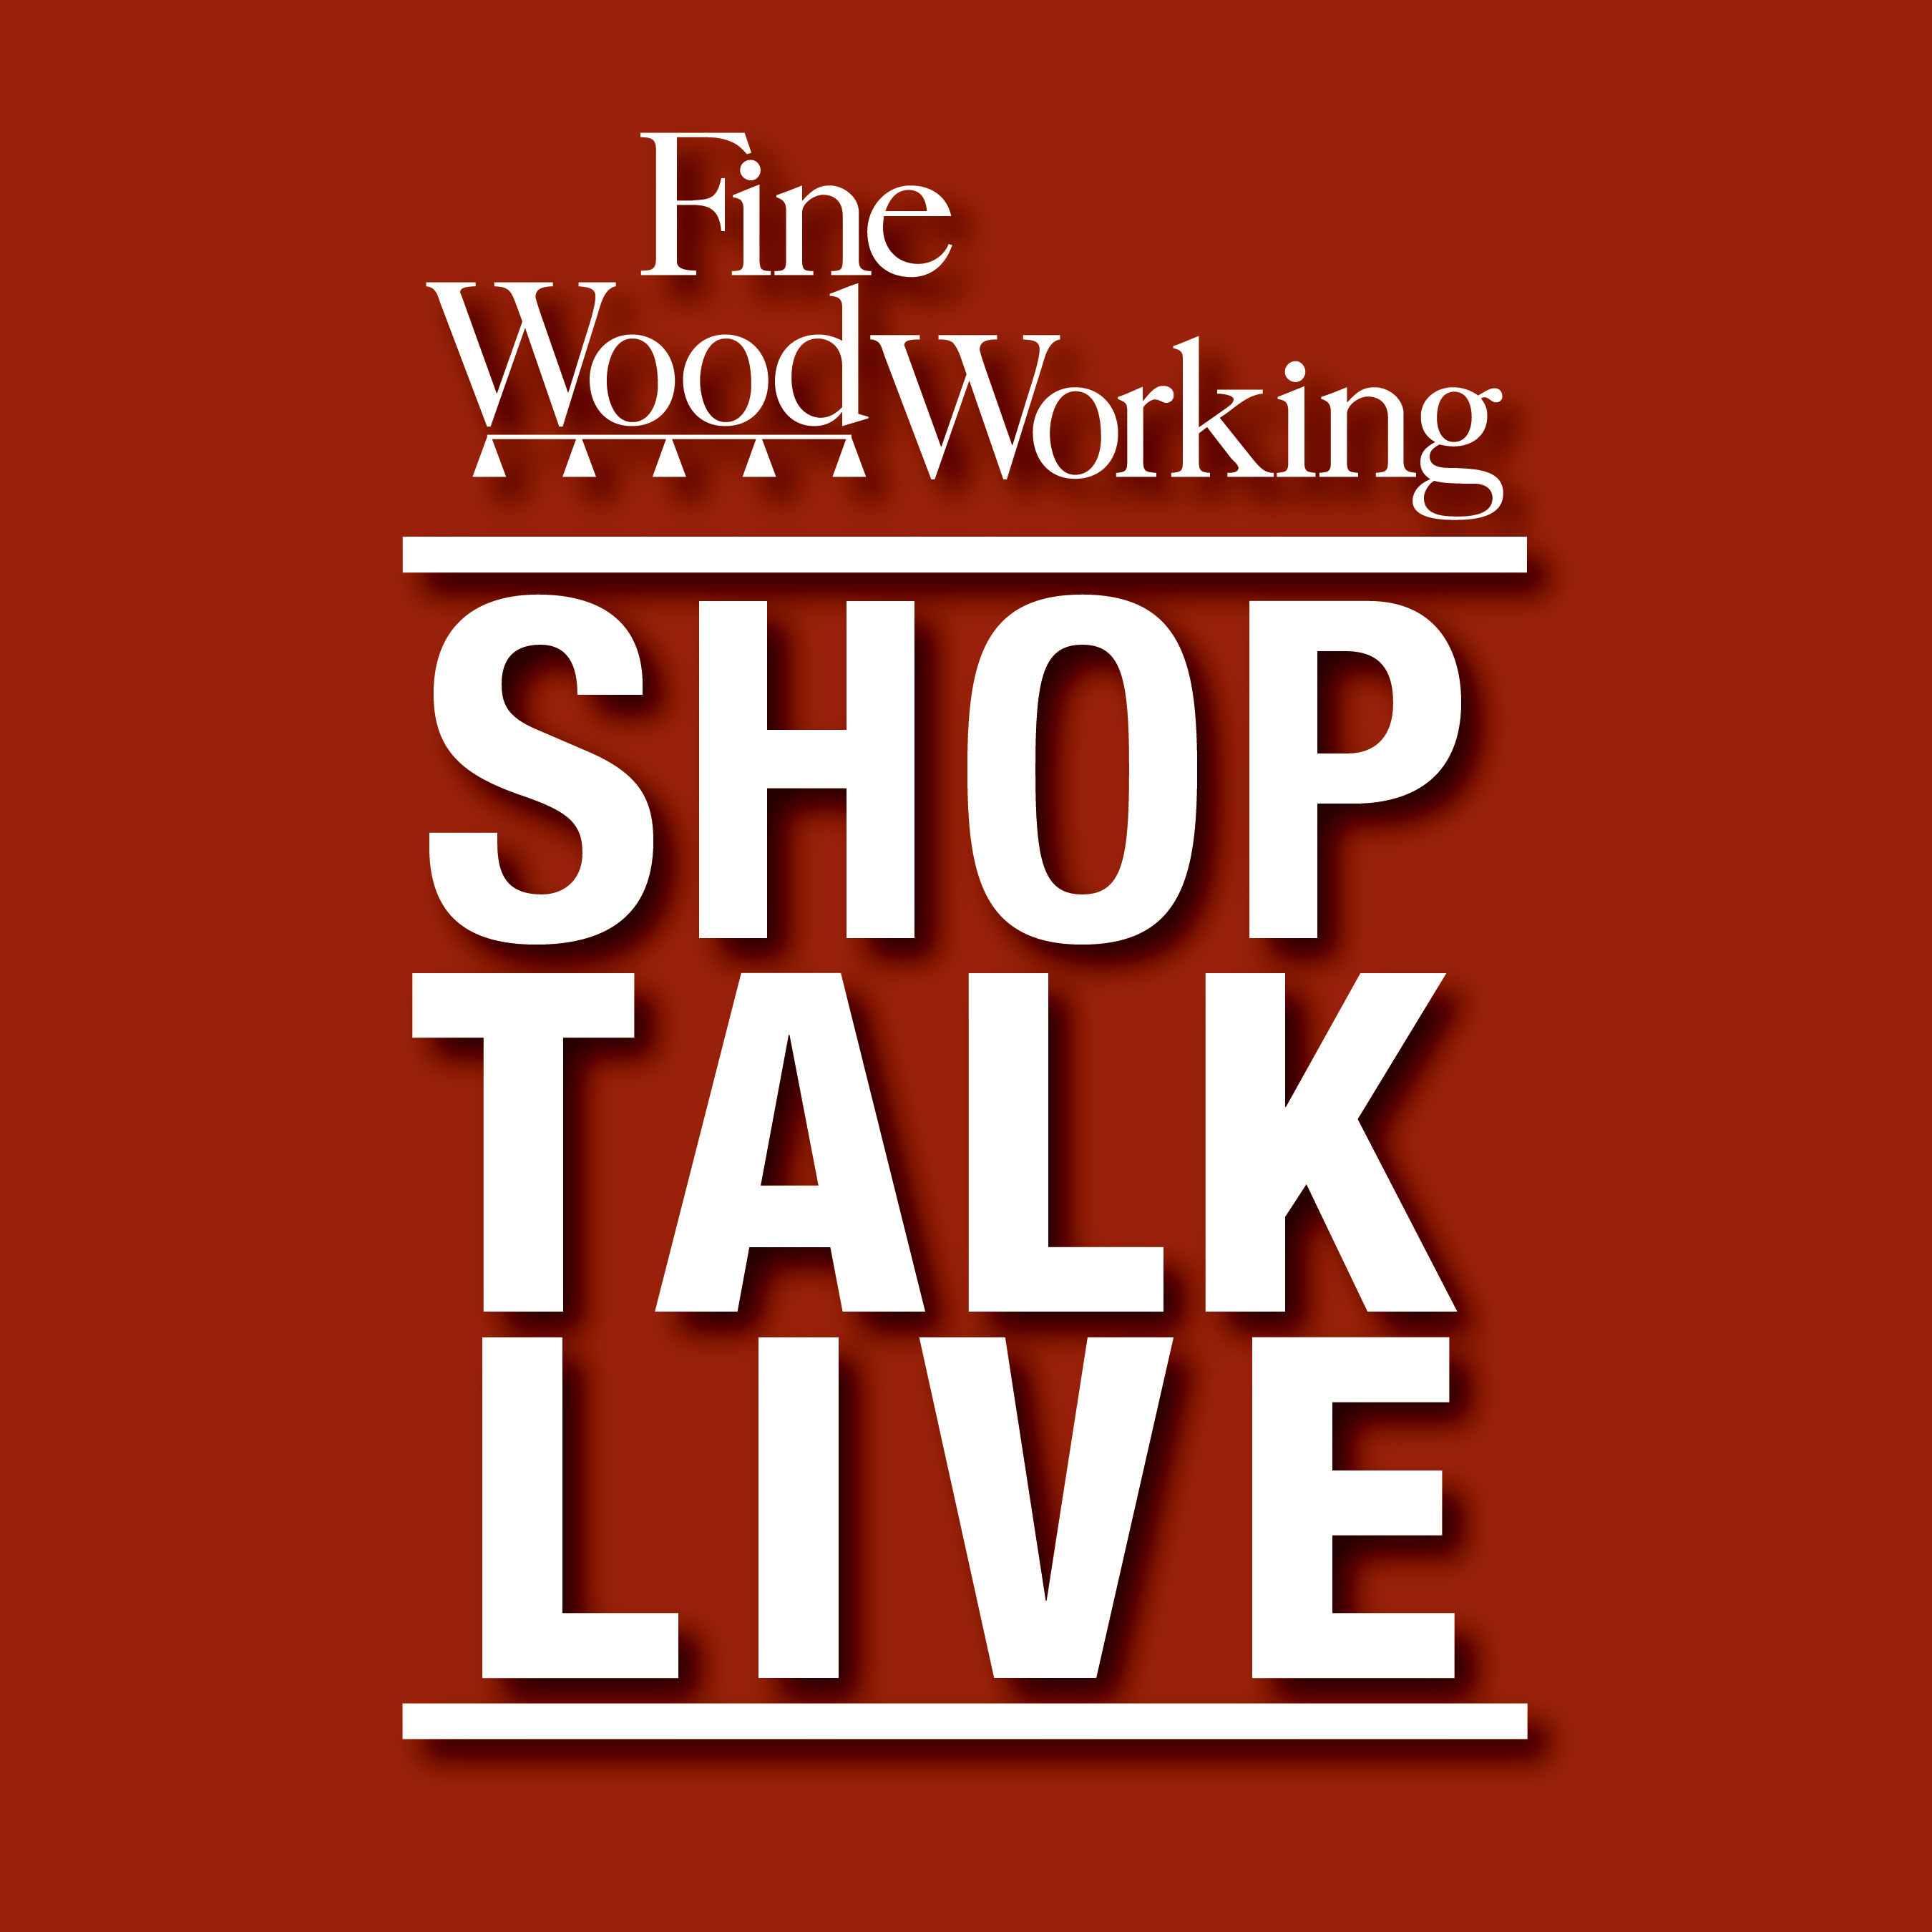 Shop Talk Live Fine Woodworking On Apple Podcasts